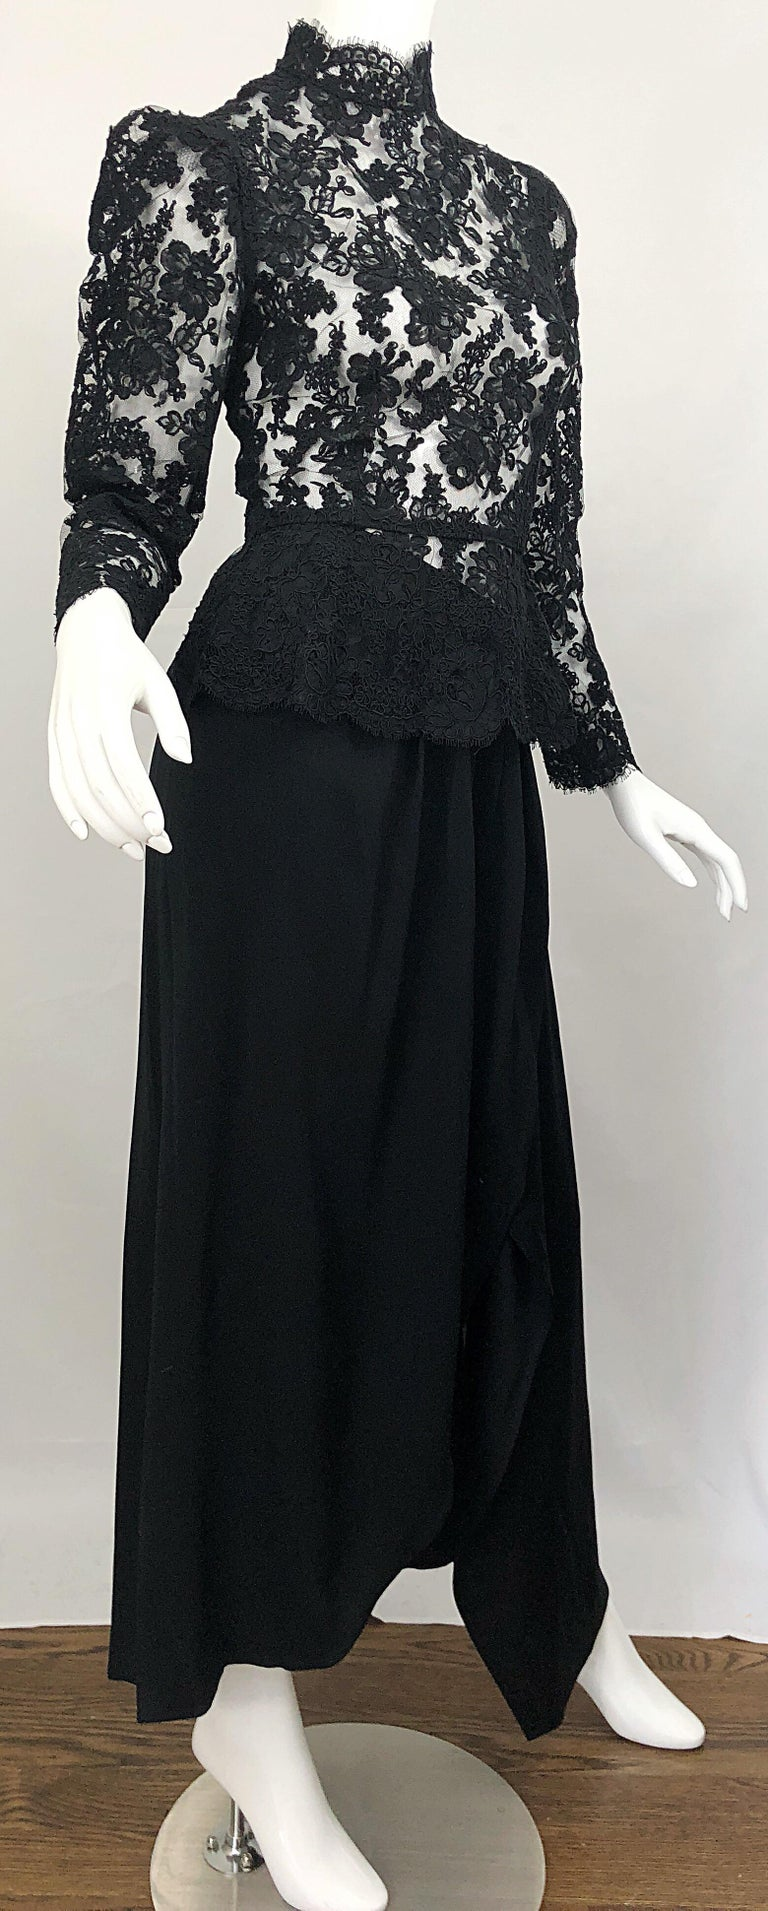 Vintage Vicky Tiel Couture 1980s Black Lace Victorian Top + Asymmetrical Skirt For Sale 8